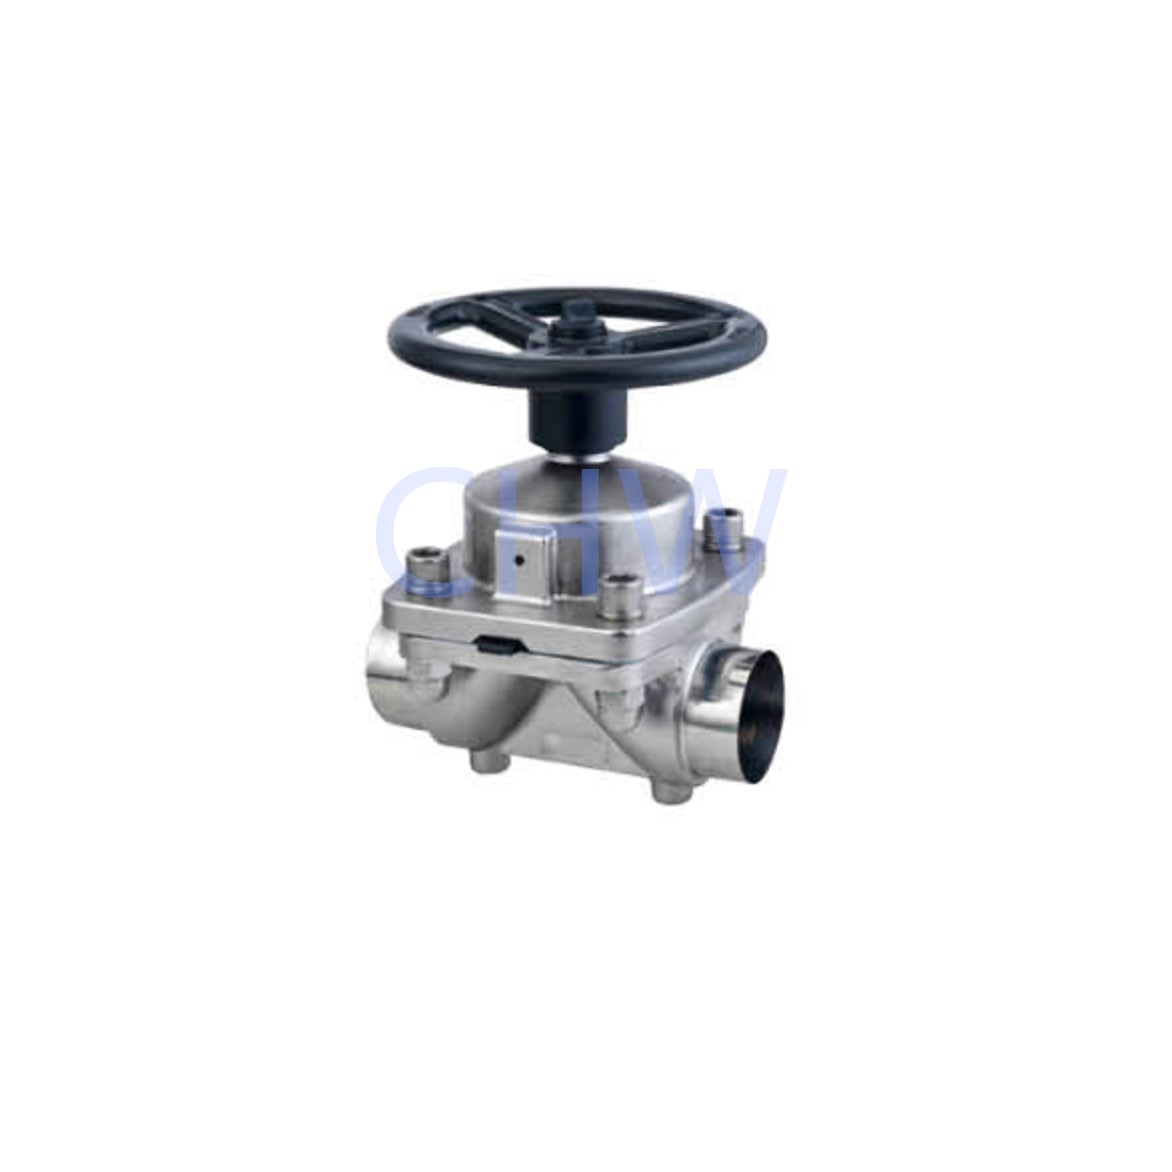 Sanitary stainless steel high quality Manual Welding Diaphragm Valve304 316L DIN SMS ISO 3A BPE IDF AS BS